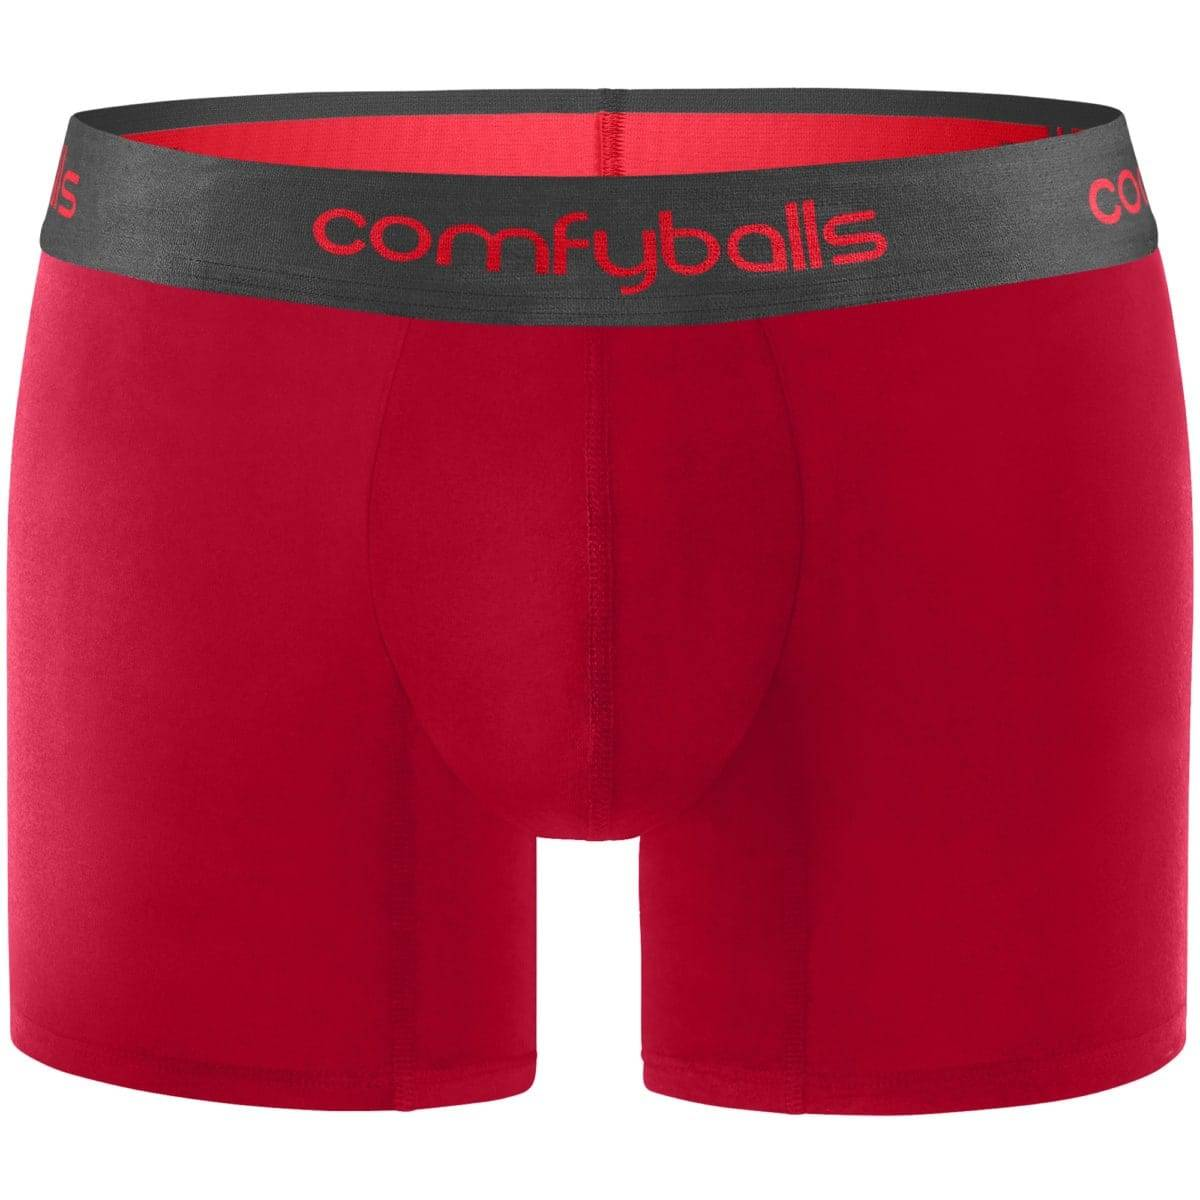 Comfyballs Red Charcoal Cotton